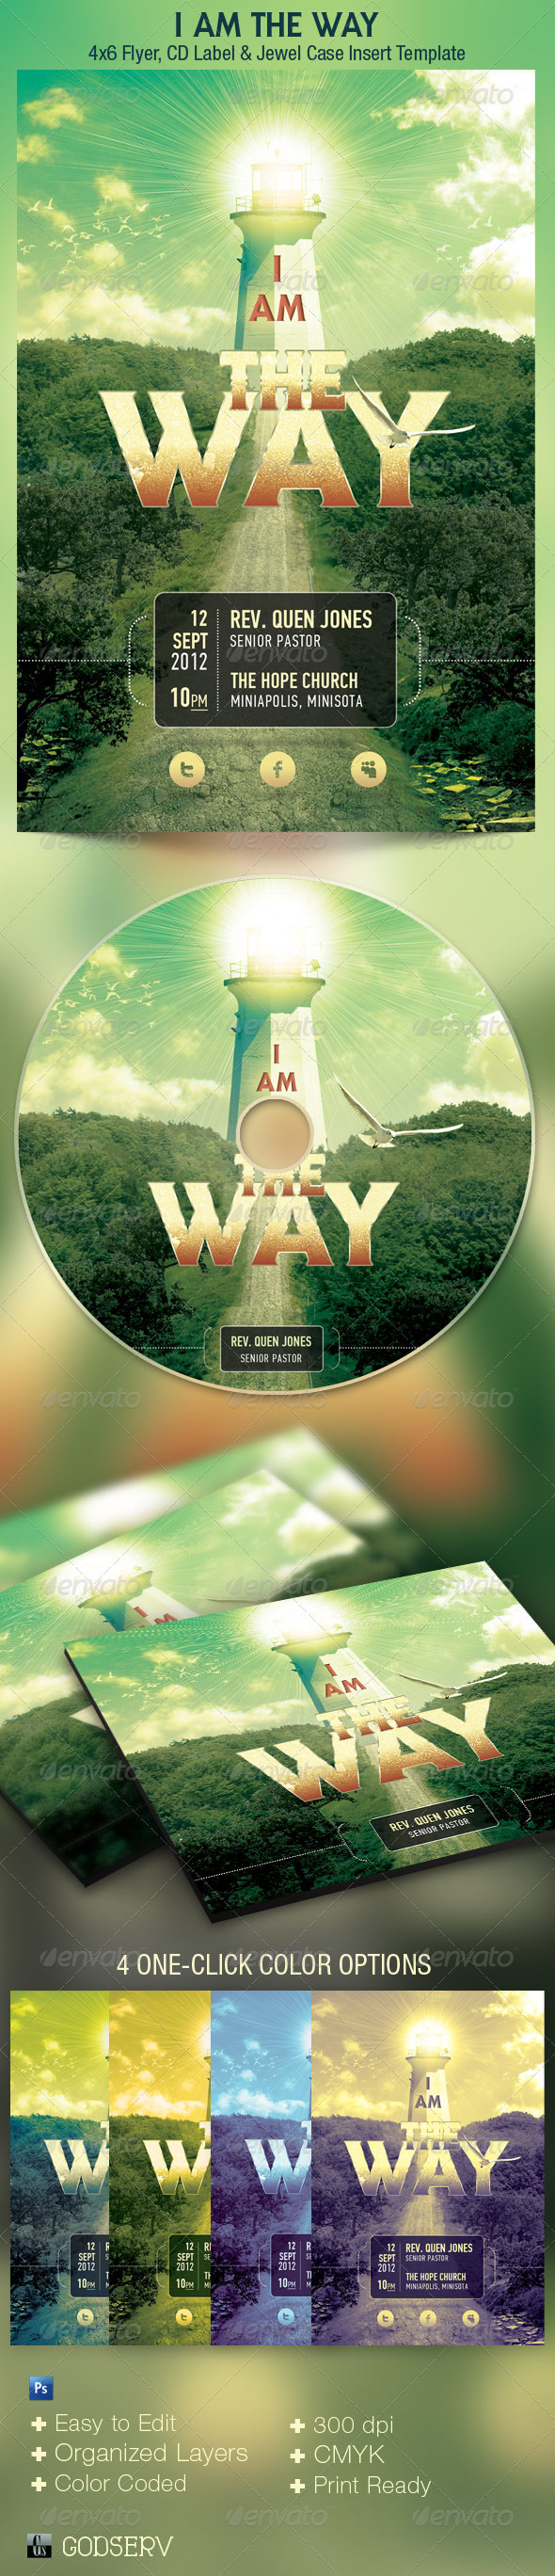 I Am The Way Church Flyer  and CD Template - Church Flyers